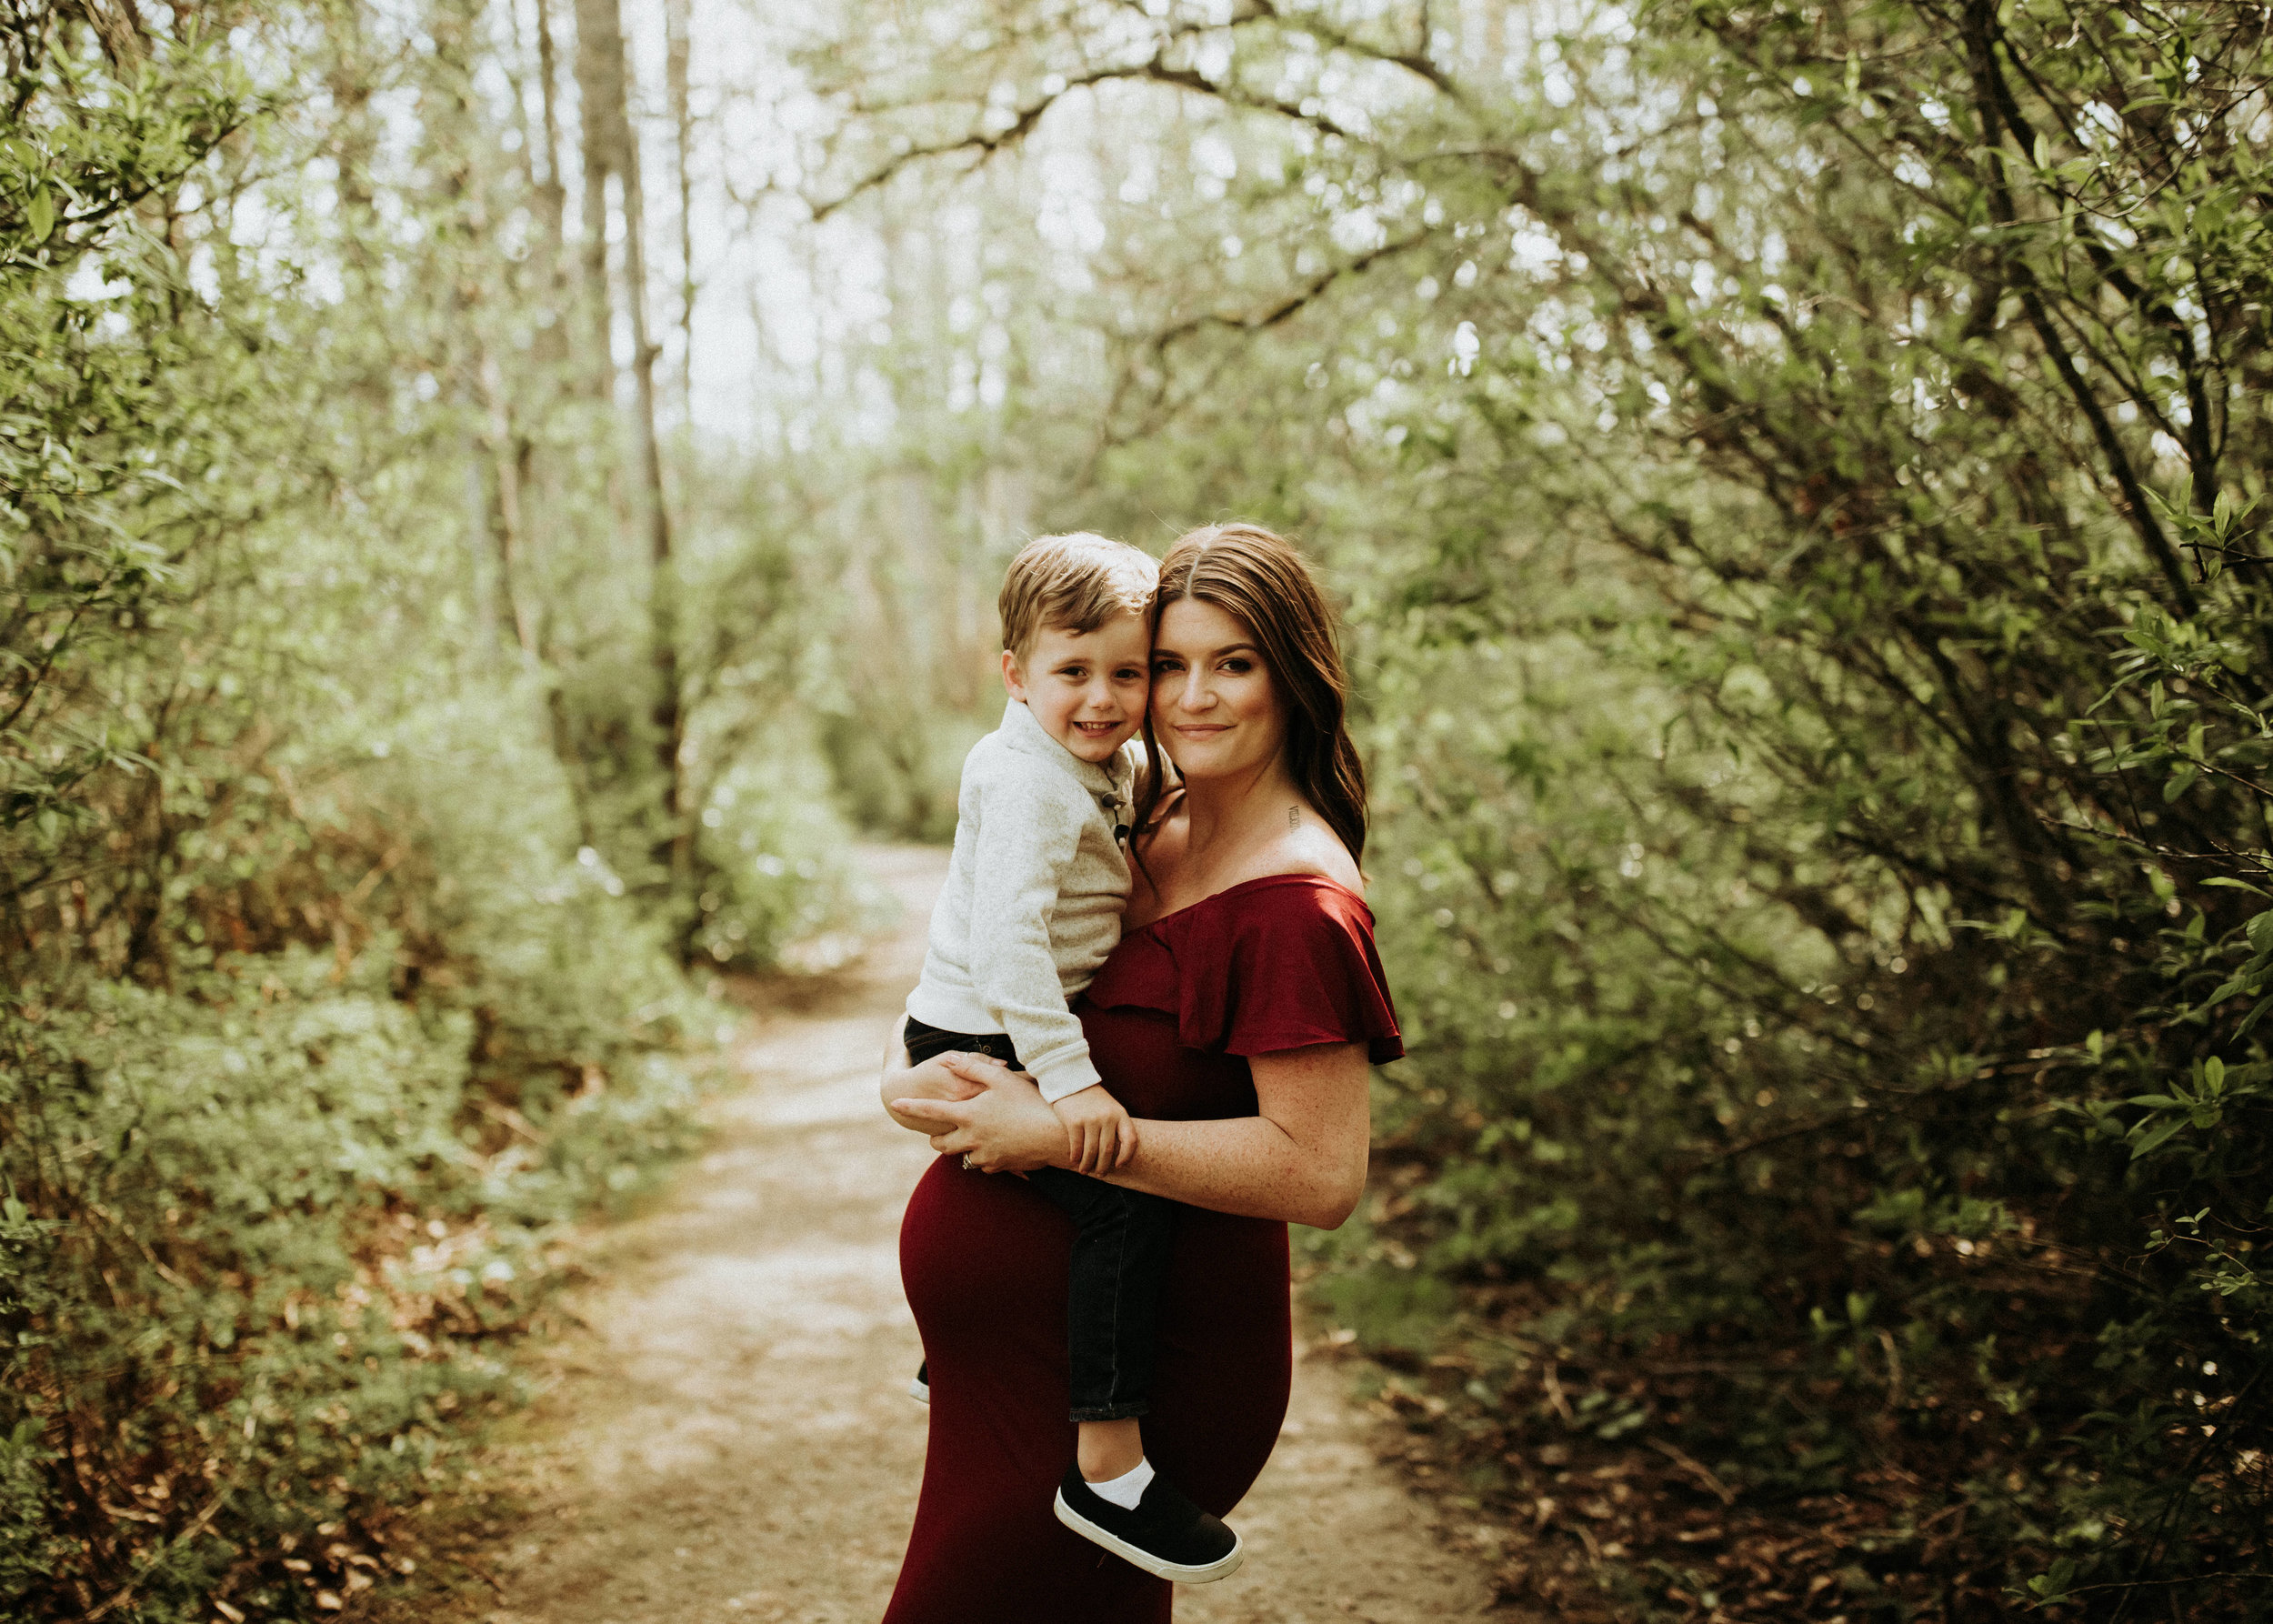 Maternity-Photographer-Bellingham-WA-Brianne-Bell-Photograpy-(Kaitlin)-1.jpg